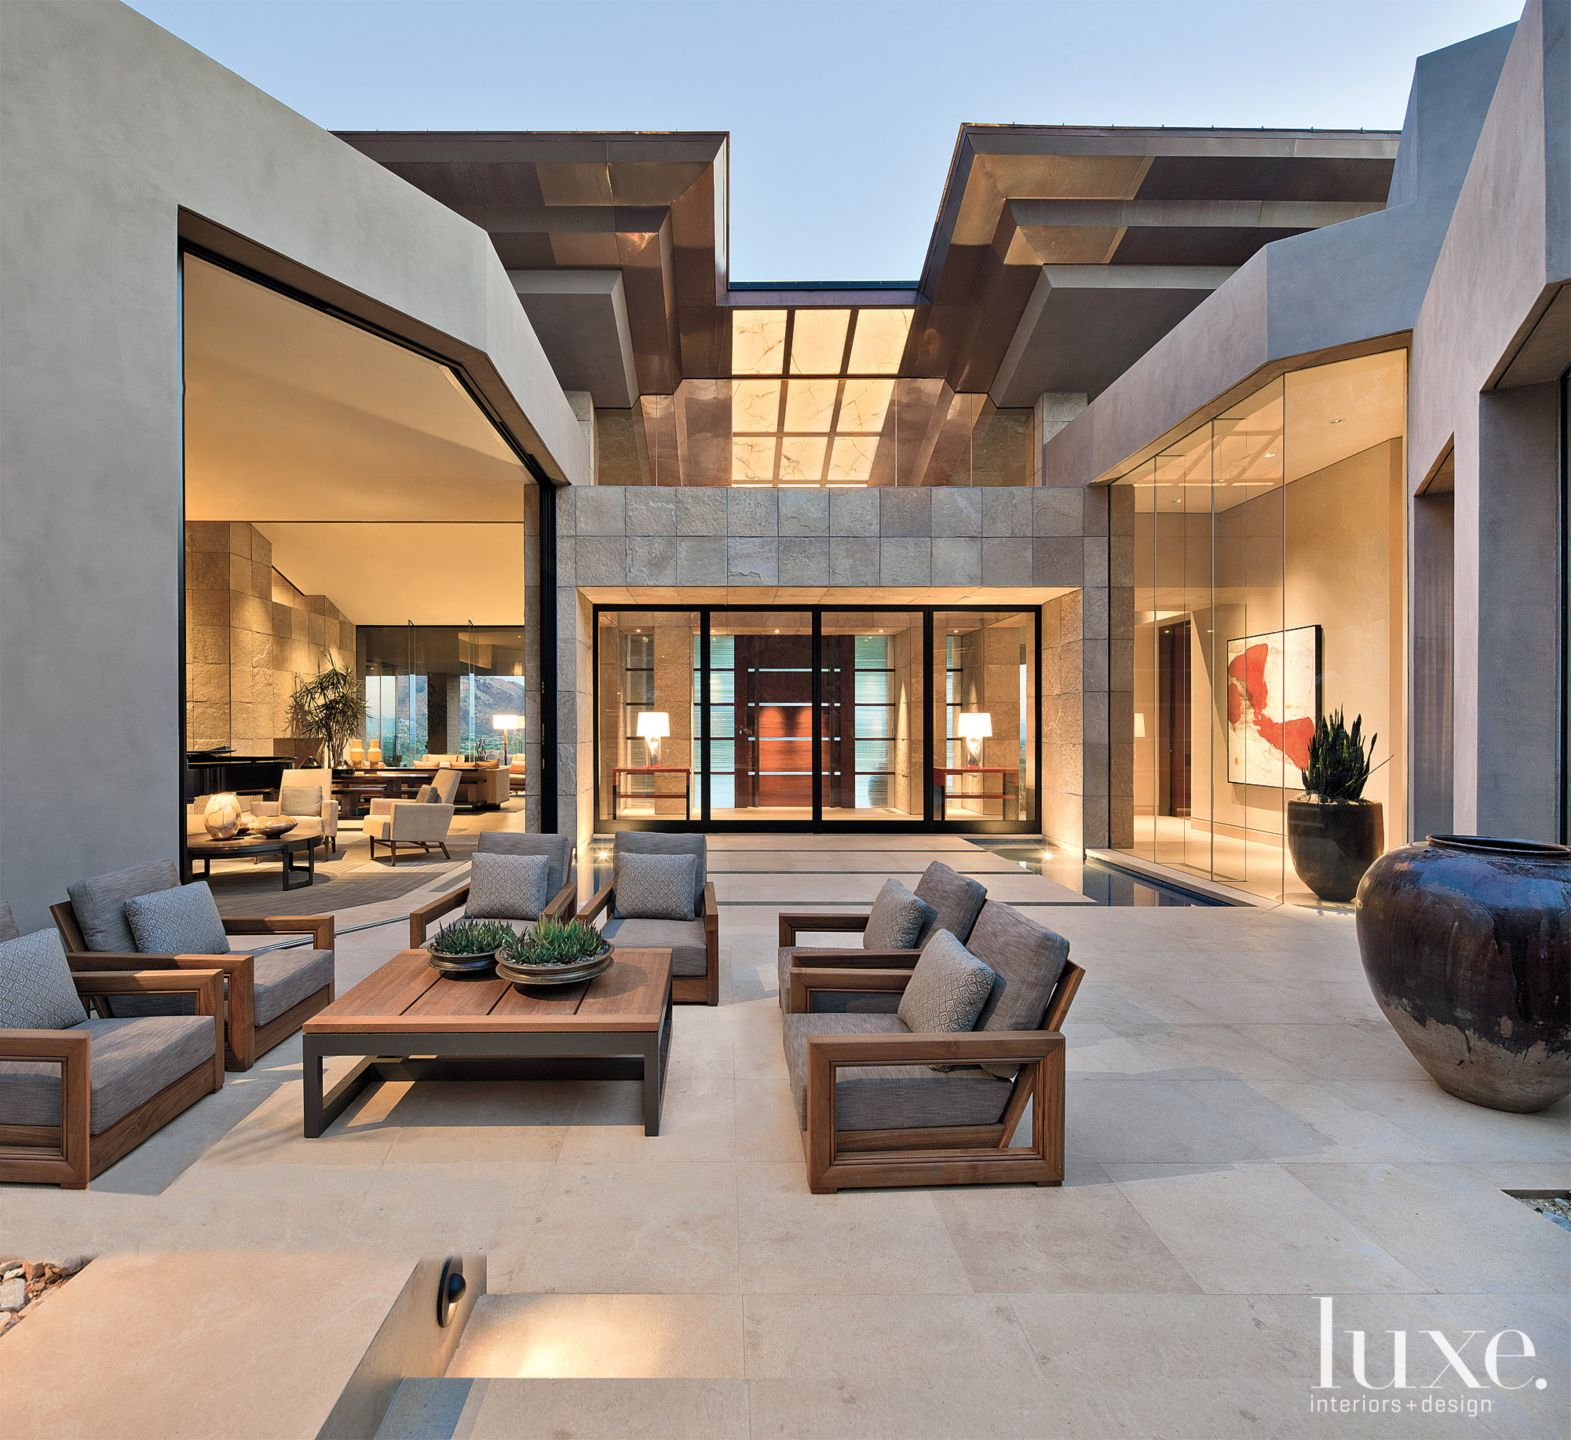 Modern Gray Courtyard with Sculptural Copper Roof